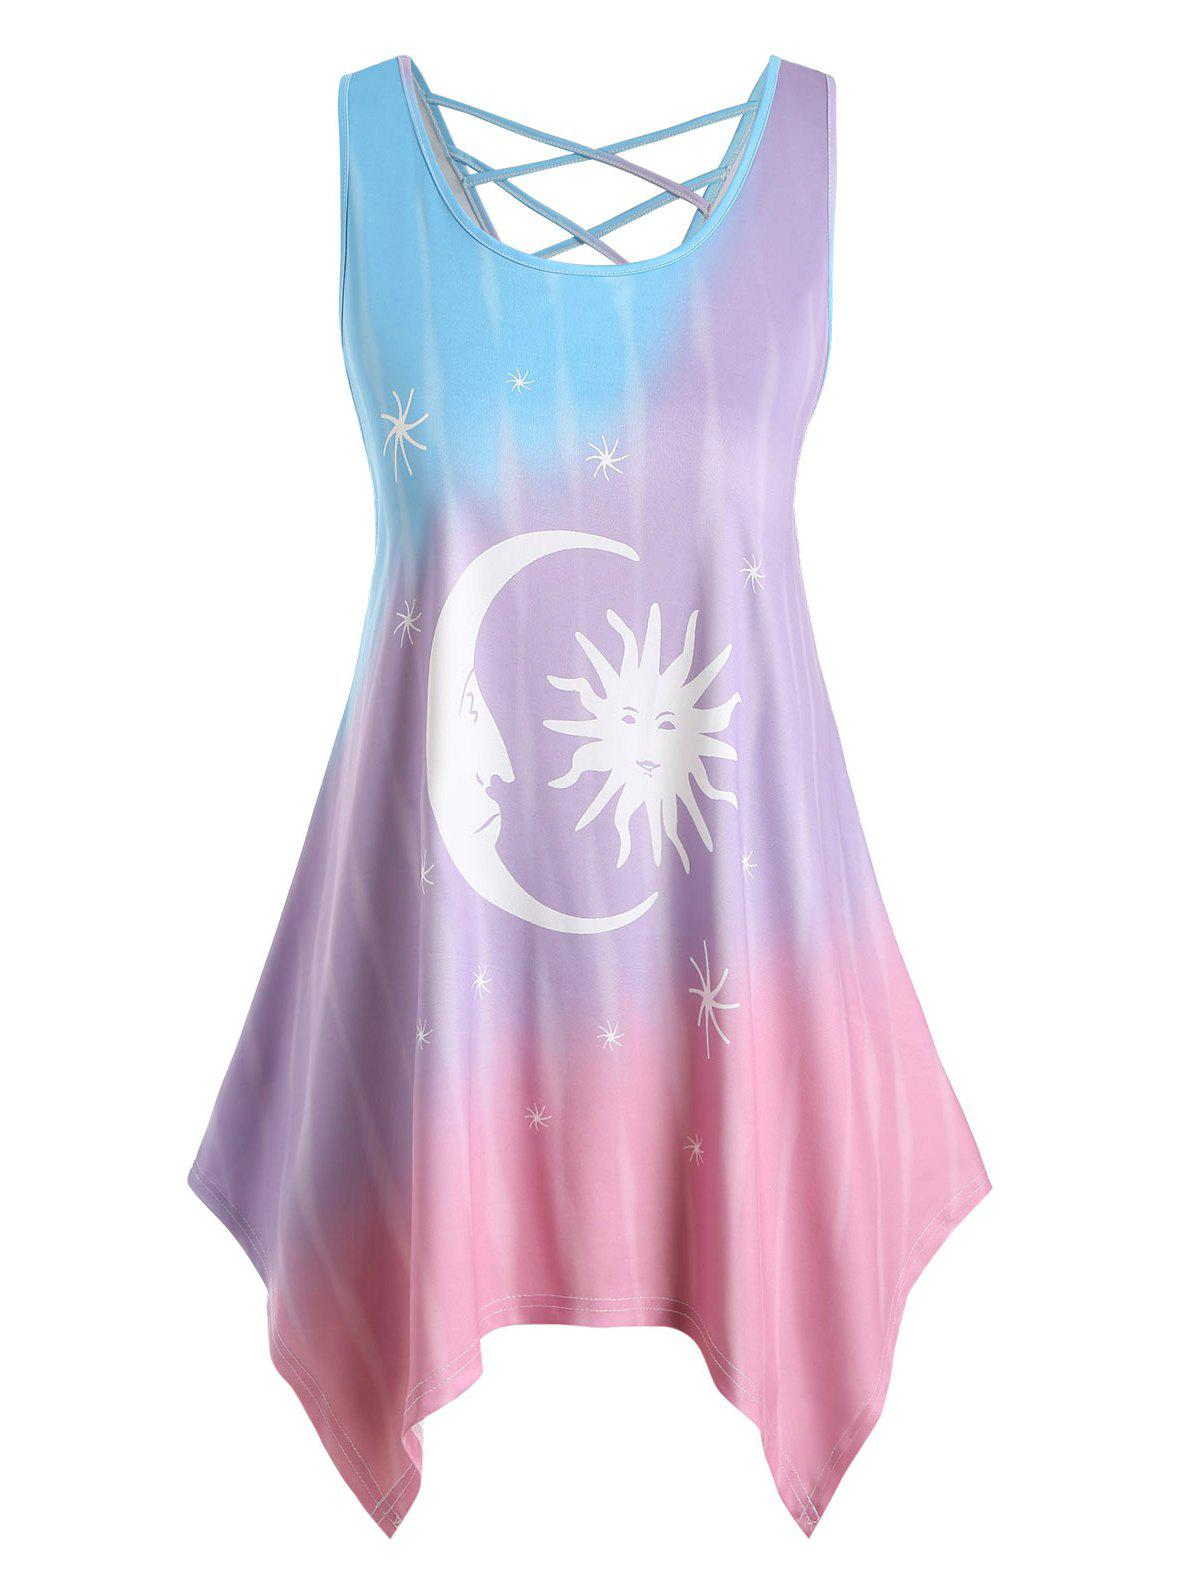 Unique Plus Size Handkerchief Sun and Moon Print Tank Top